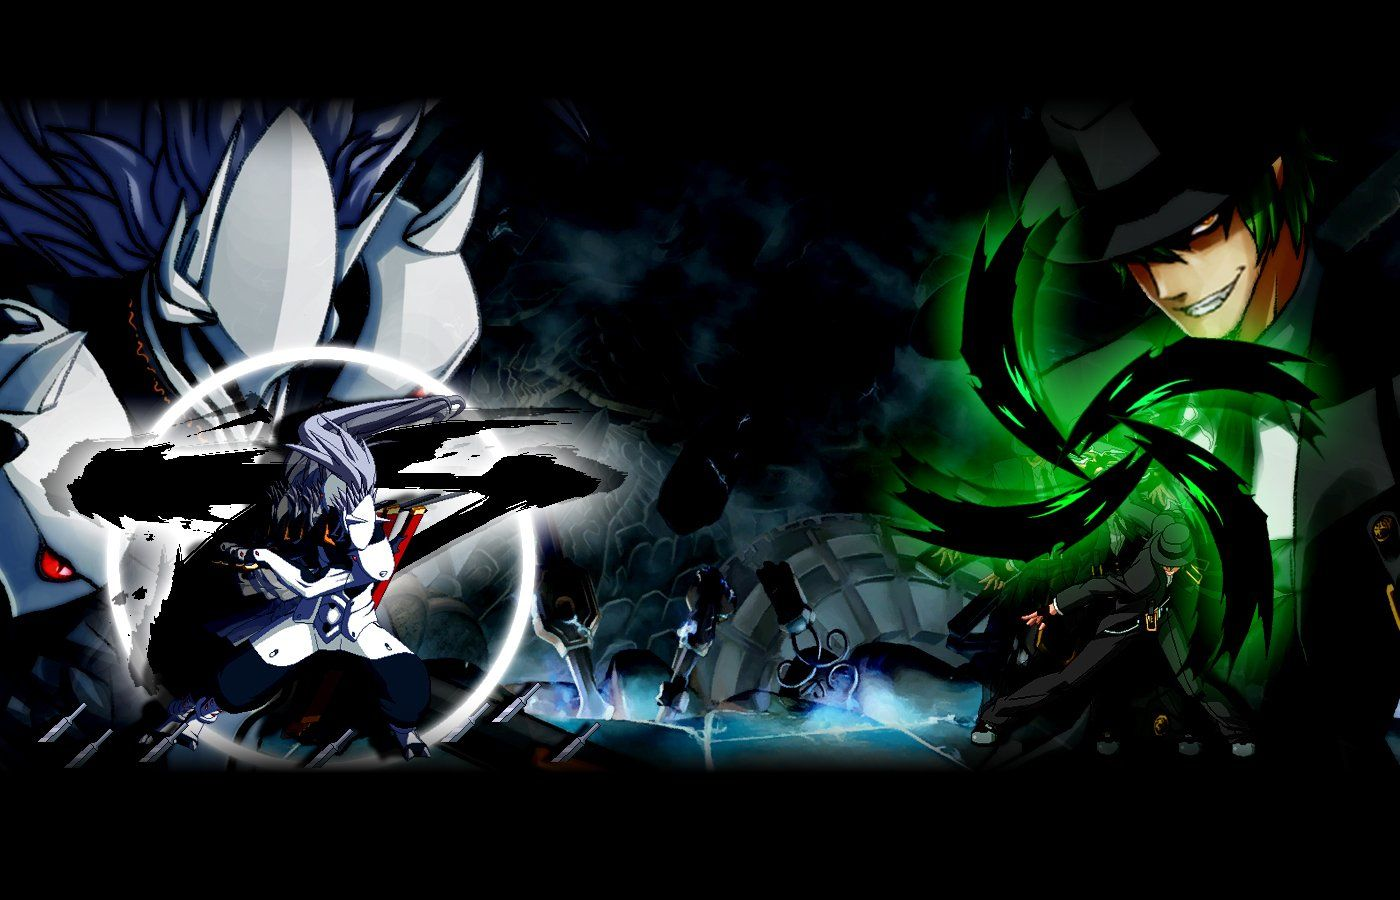 1400x900 Blazblue Continuum Shift Wallpaper Background Image View Download Comment And Rate Wallpaper Background Images Wallpaper Wallpaper Backgrounds